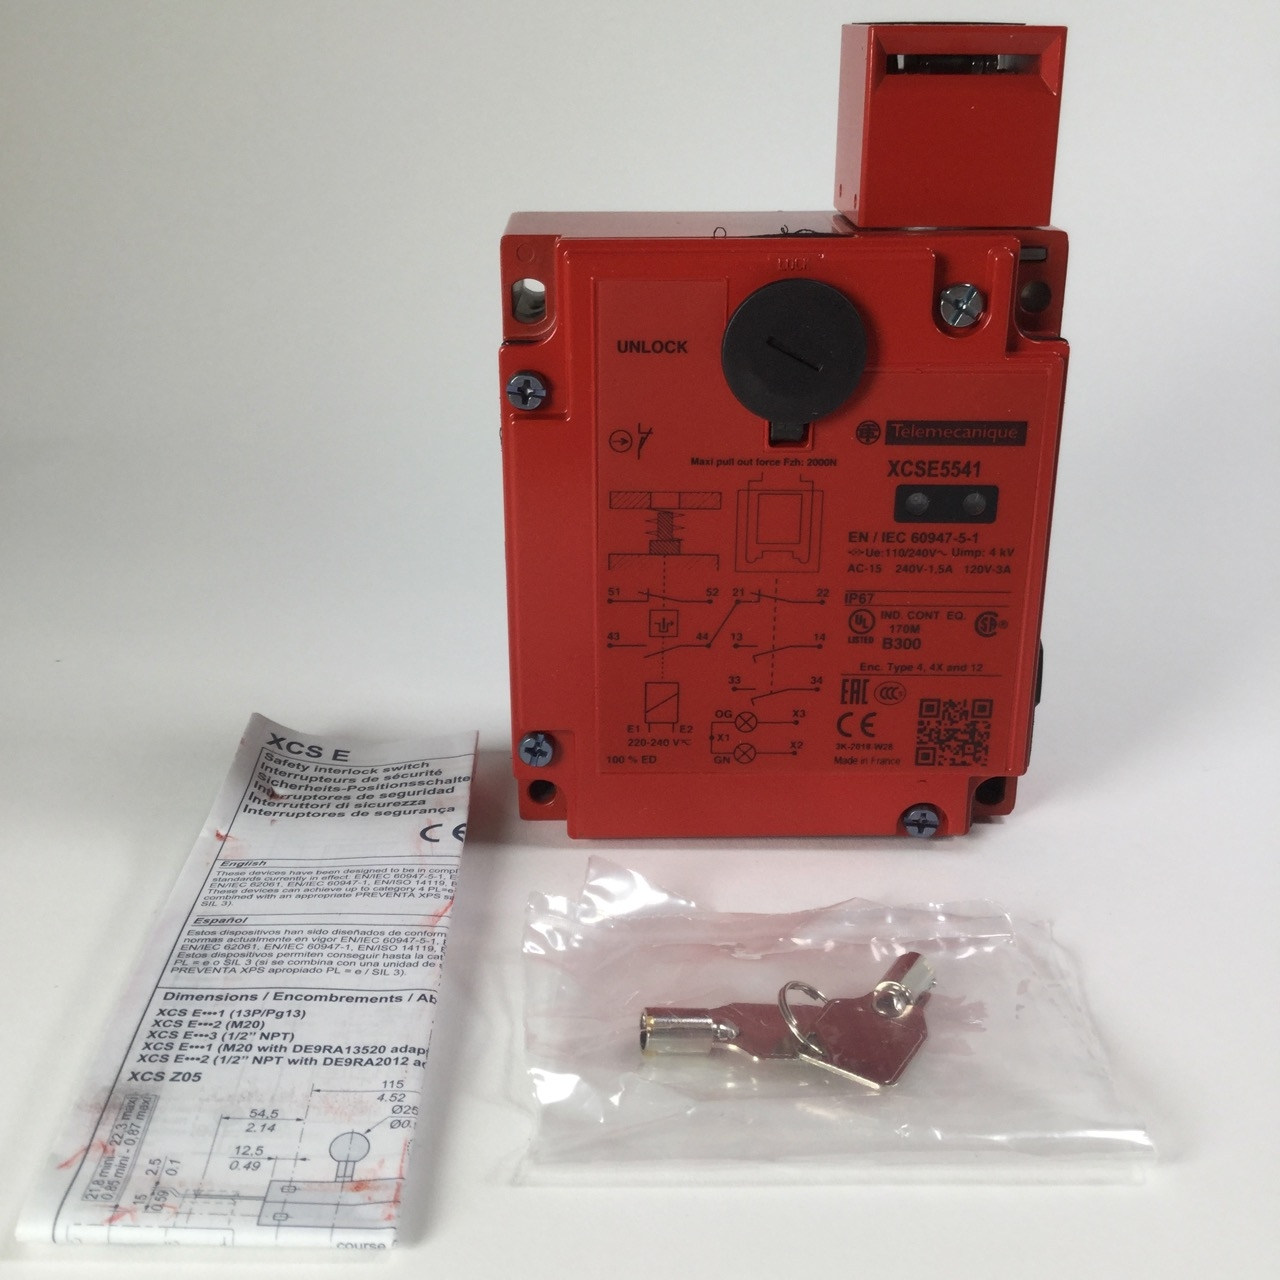 Telemecanique xcse 7311 Metal Safety Switch PREVENTA SAFETY DETECTION NEW NFP